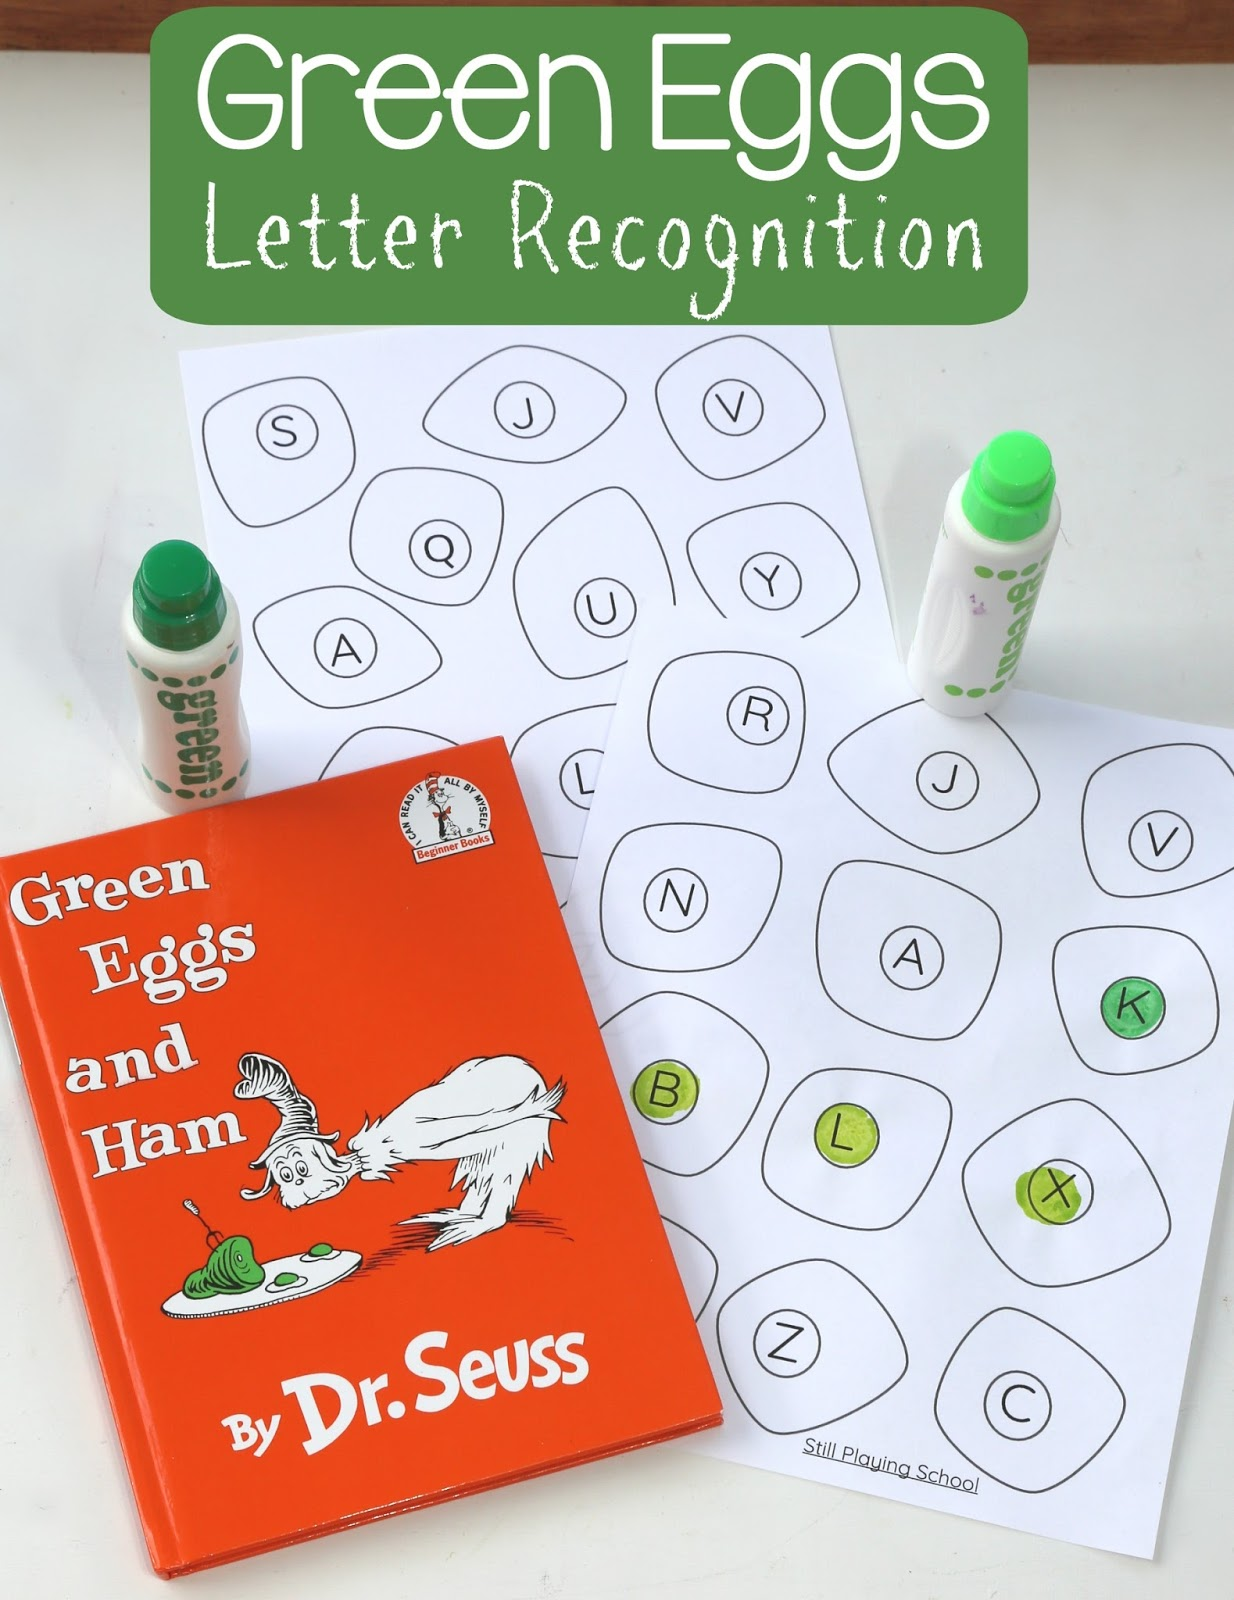 green eggs and ham letter recognition still playing